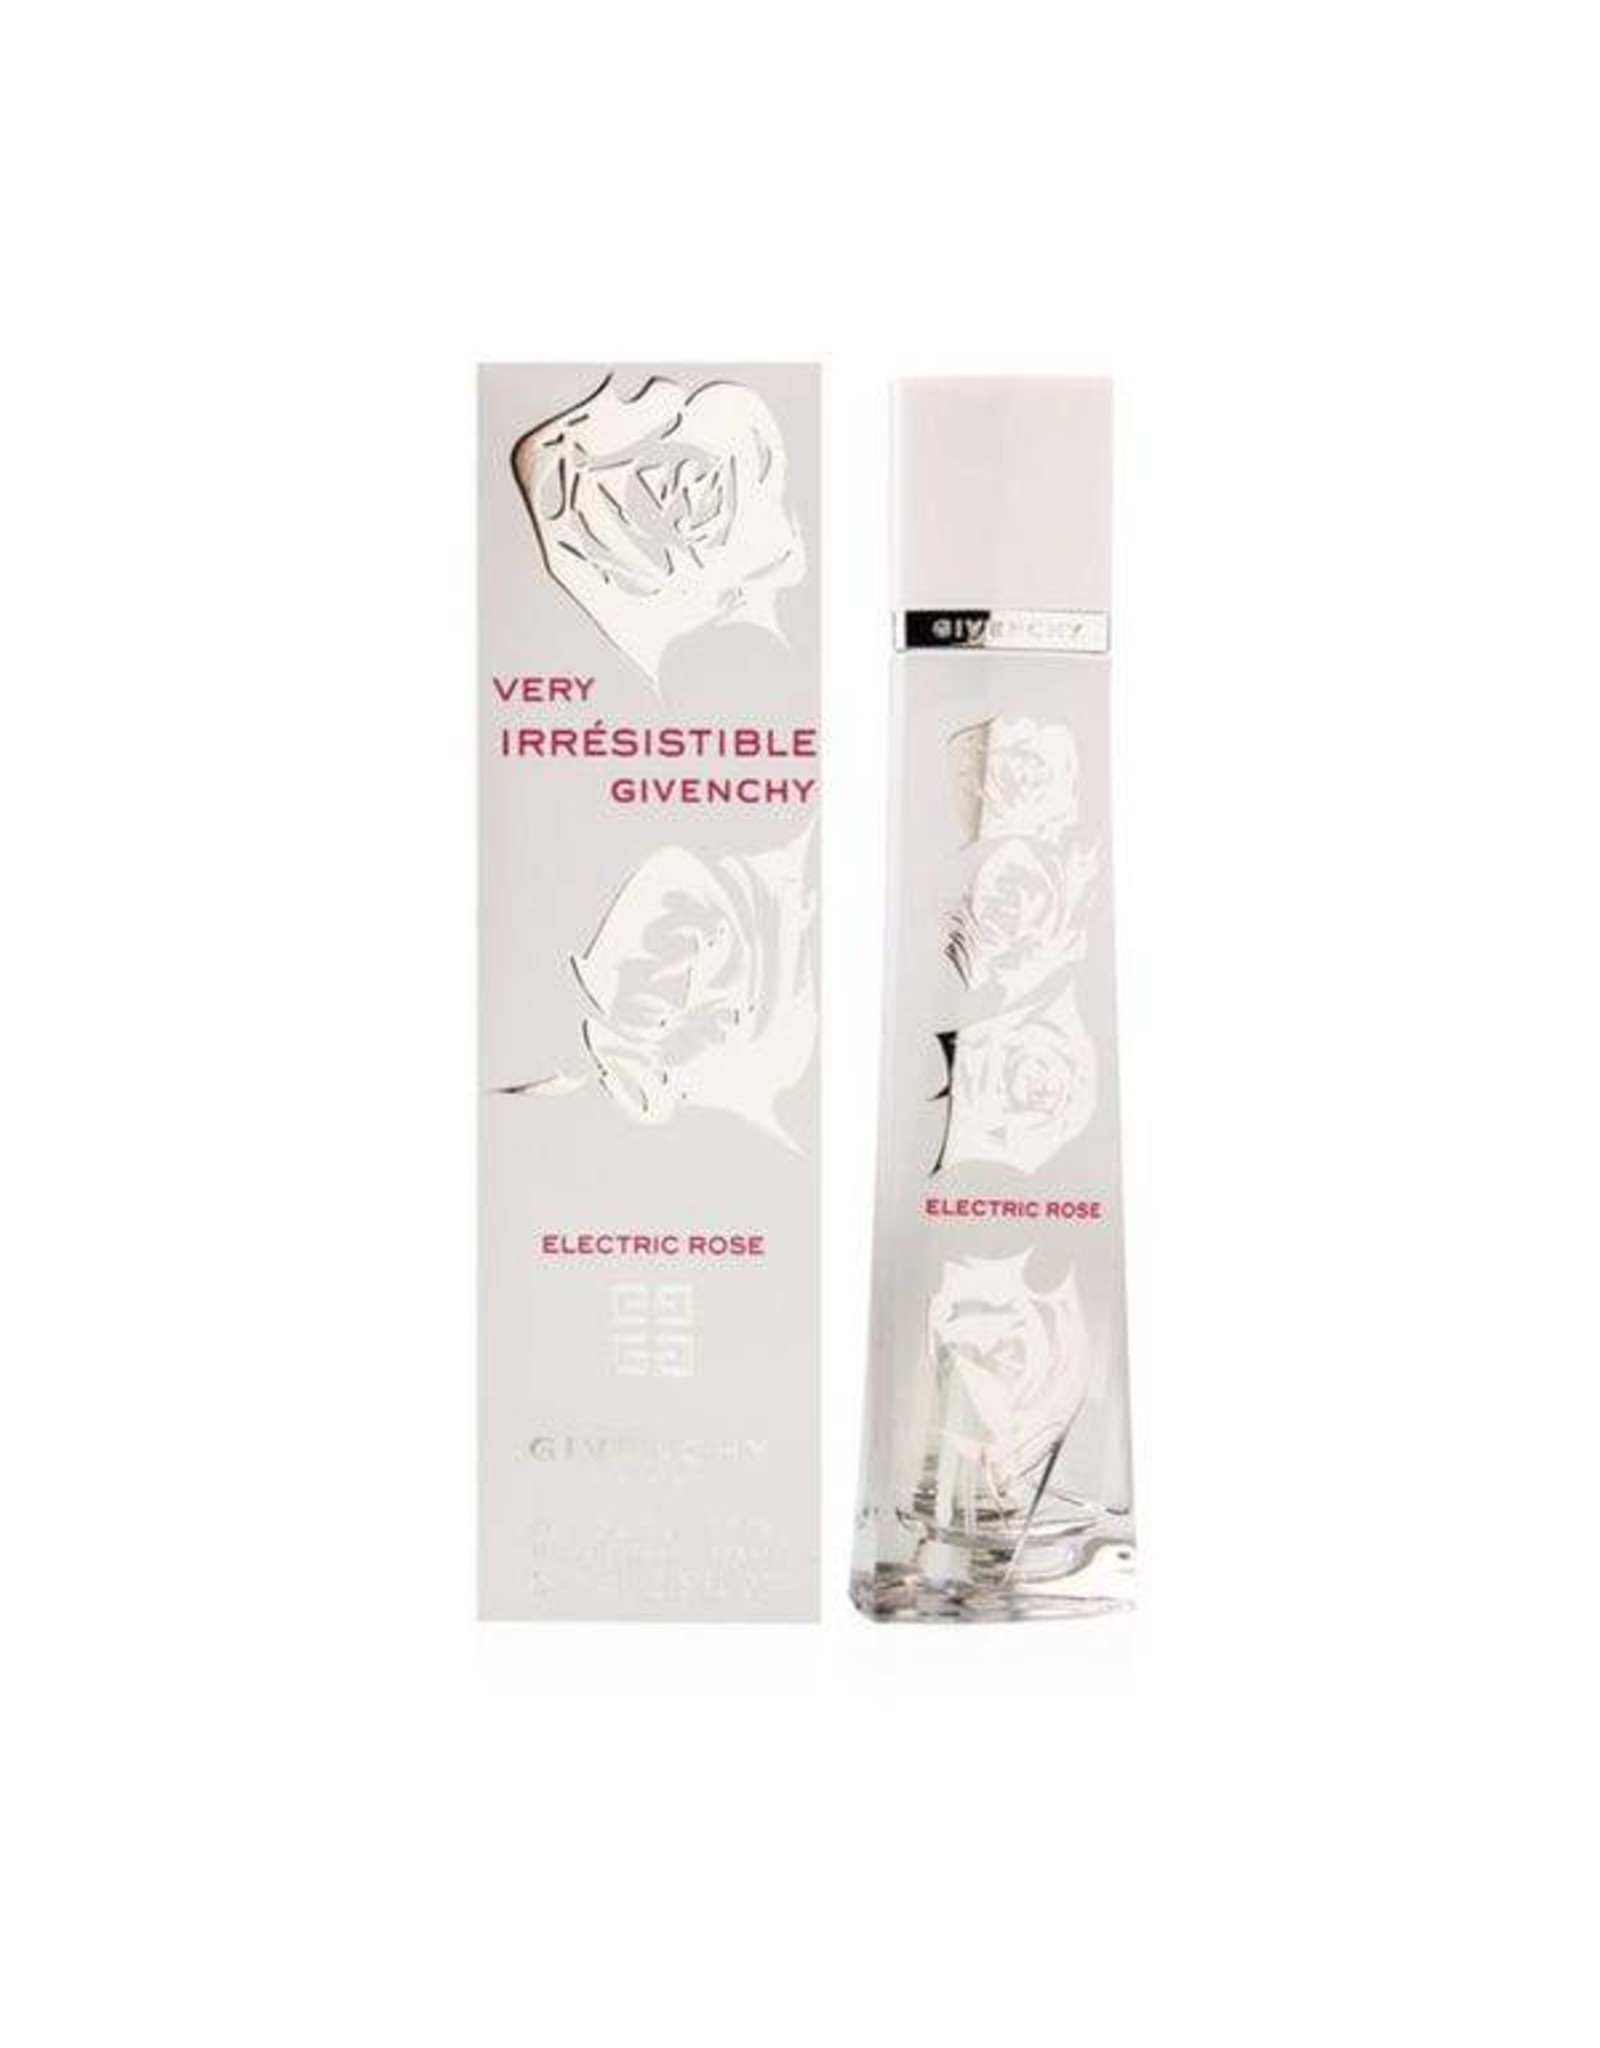 GIVENCHY GIVENCHY VERY IRRESISTIBLE ELECTRIC ROSE